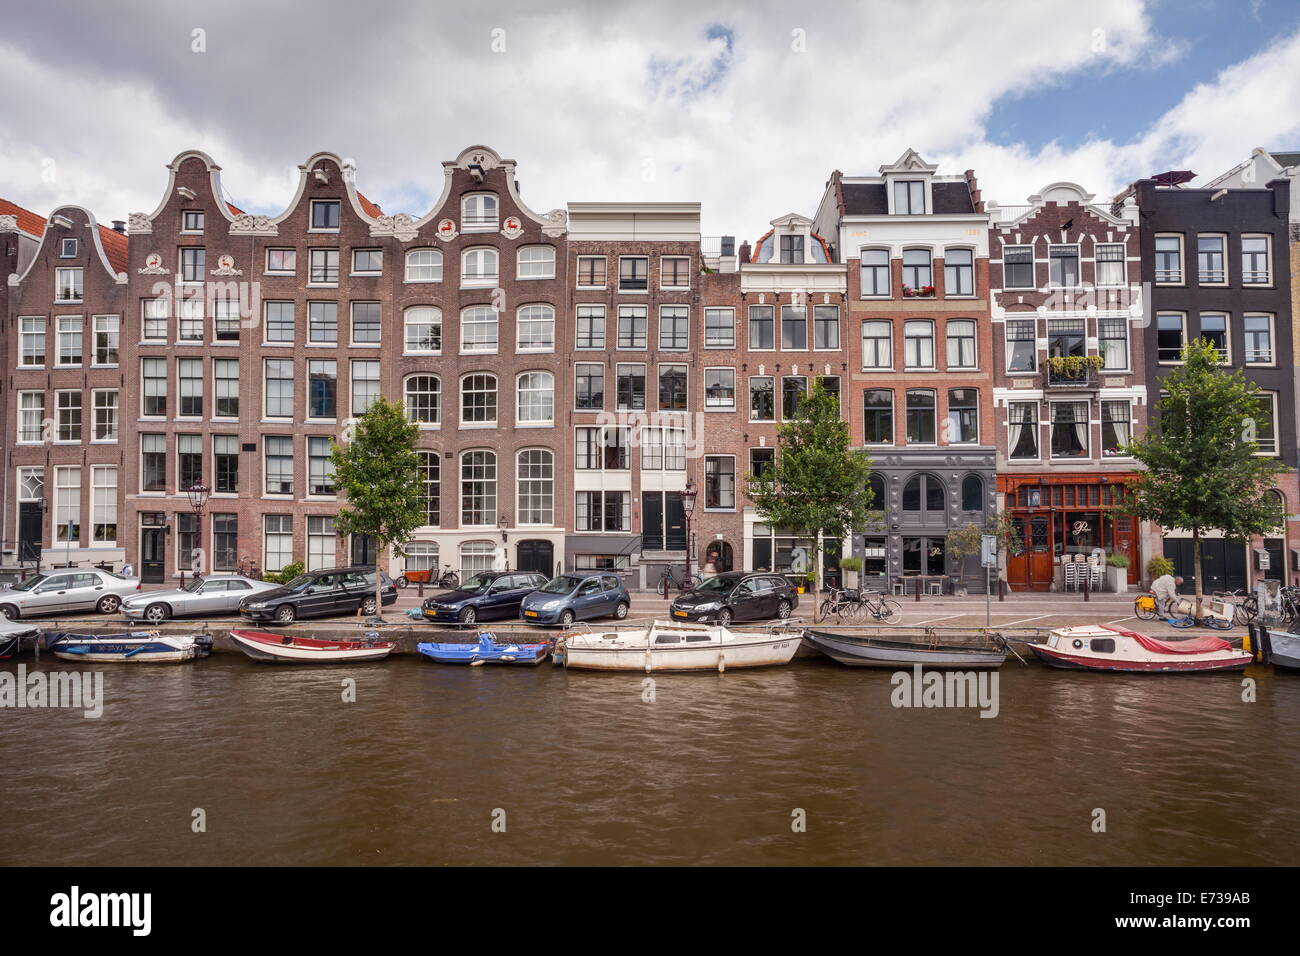 The Prinsengracht canal, UNESCO World Heritage Site, Amsterdam, The Netherlands, Europe - Stock Image